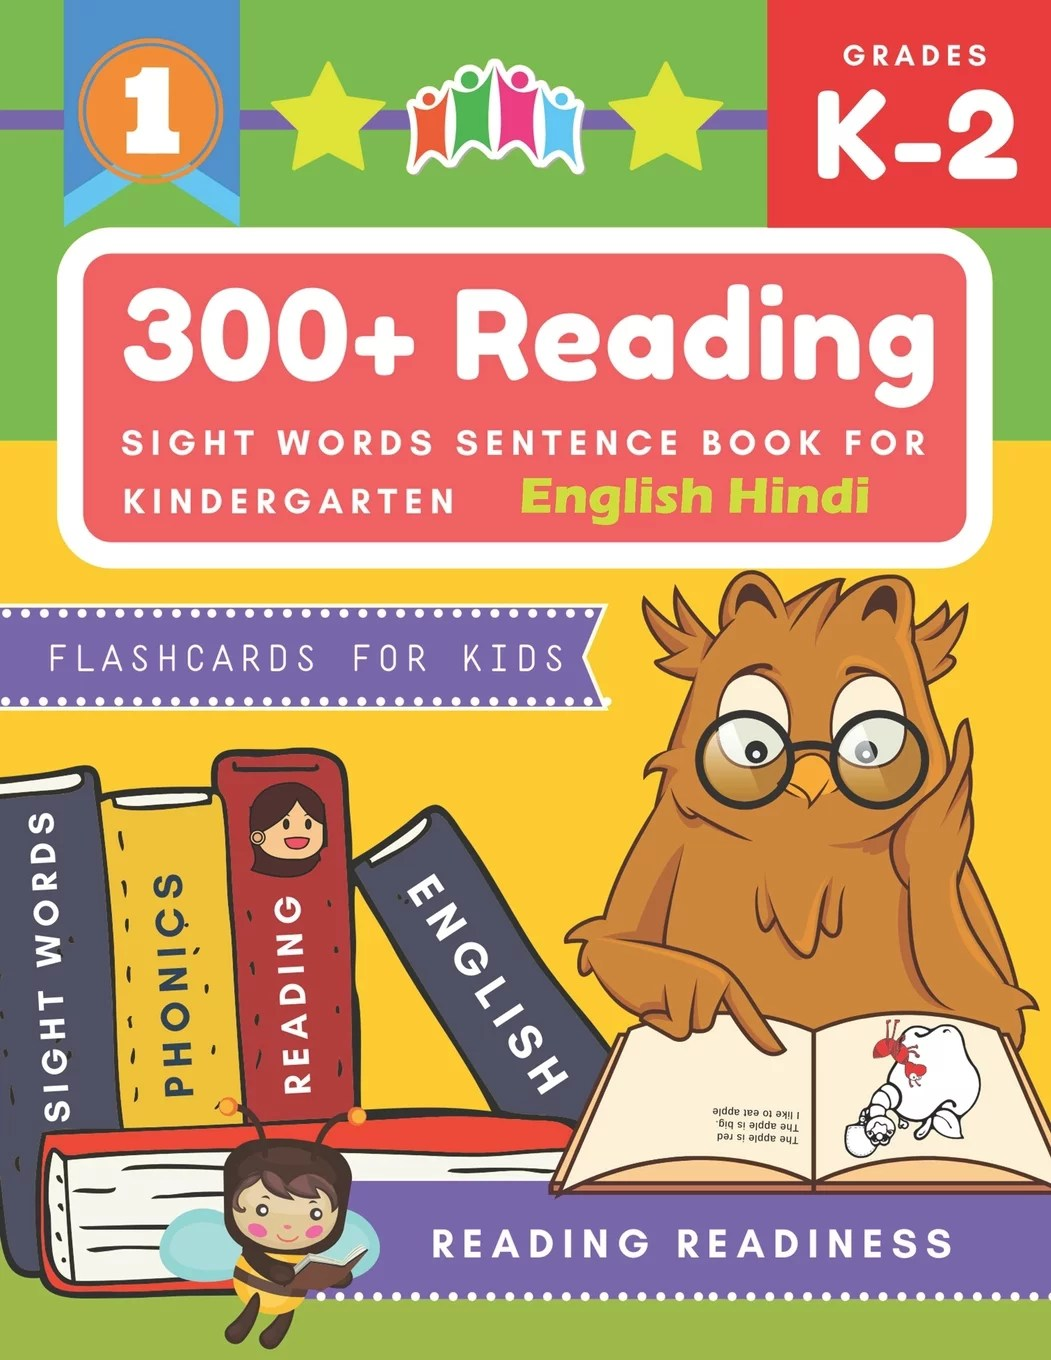 300+ Reading Sight Words Sentence Book for Kindergarten English Hindi Flashcards for Kids: I Can Read several short sentences building games plus learning grammar punctuation and structure workbook. G